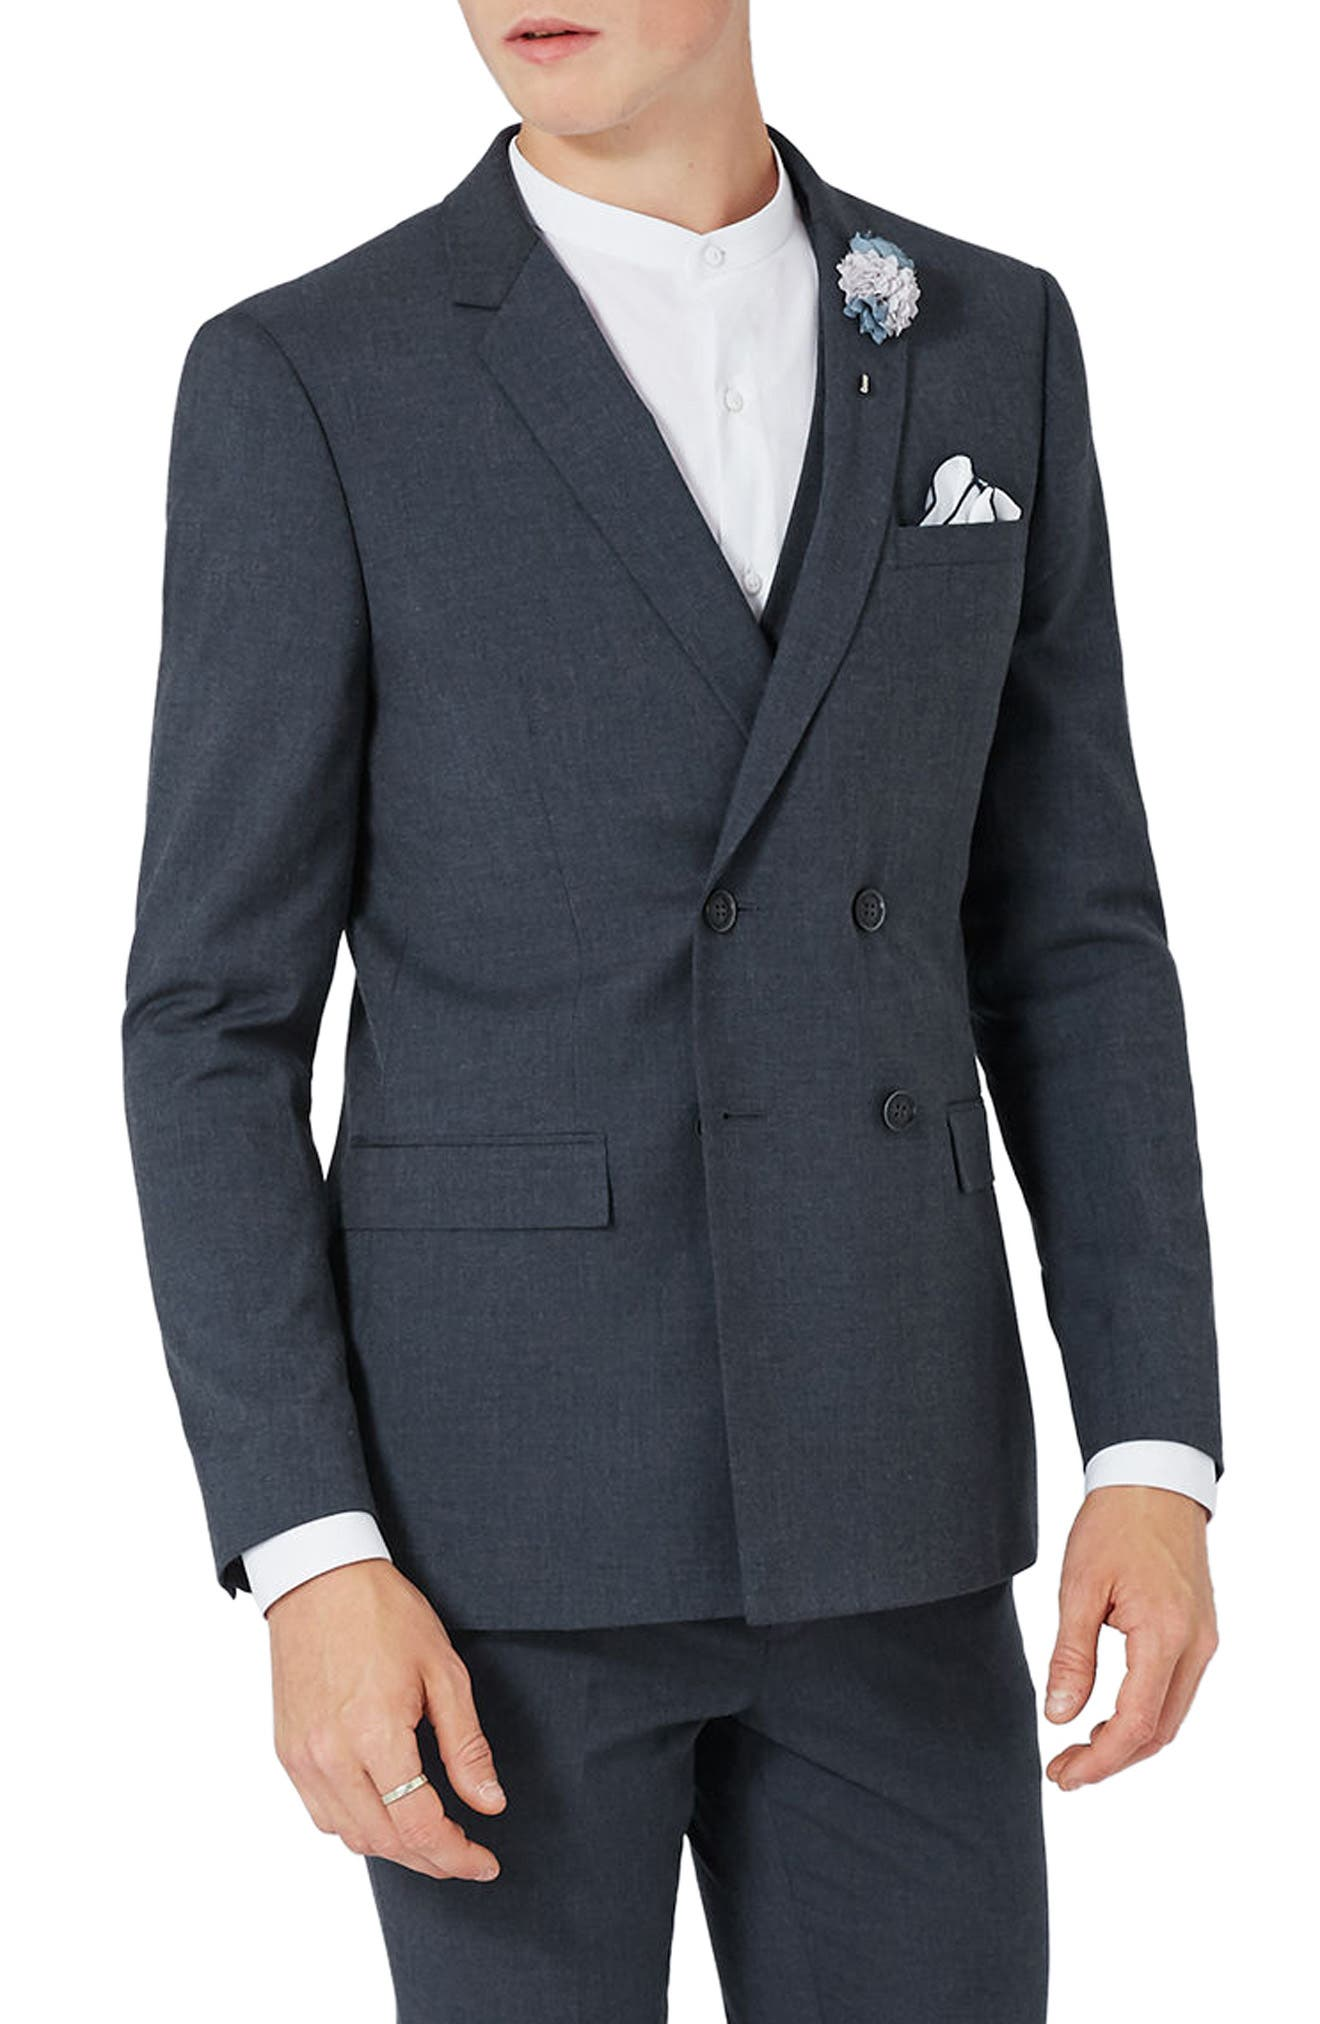 Main Image - Topman Skinny Fit Double Breasted Suit Jacket